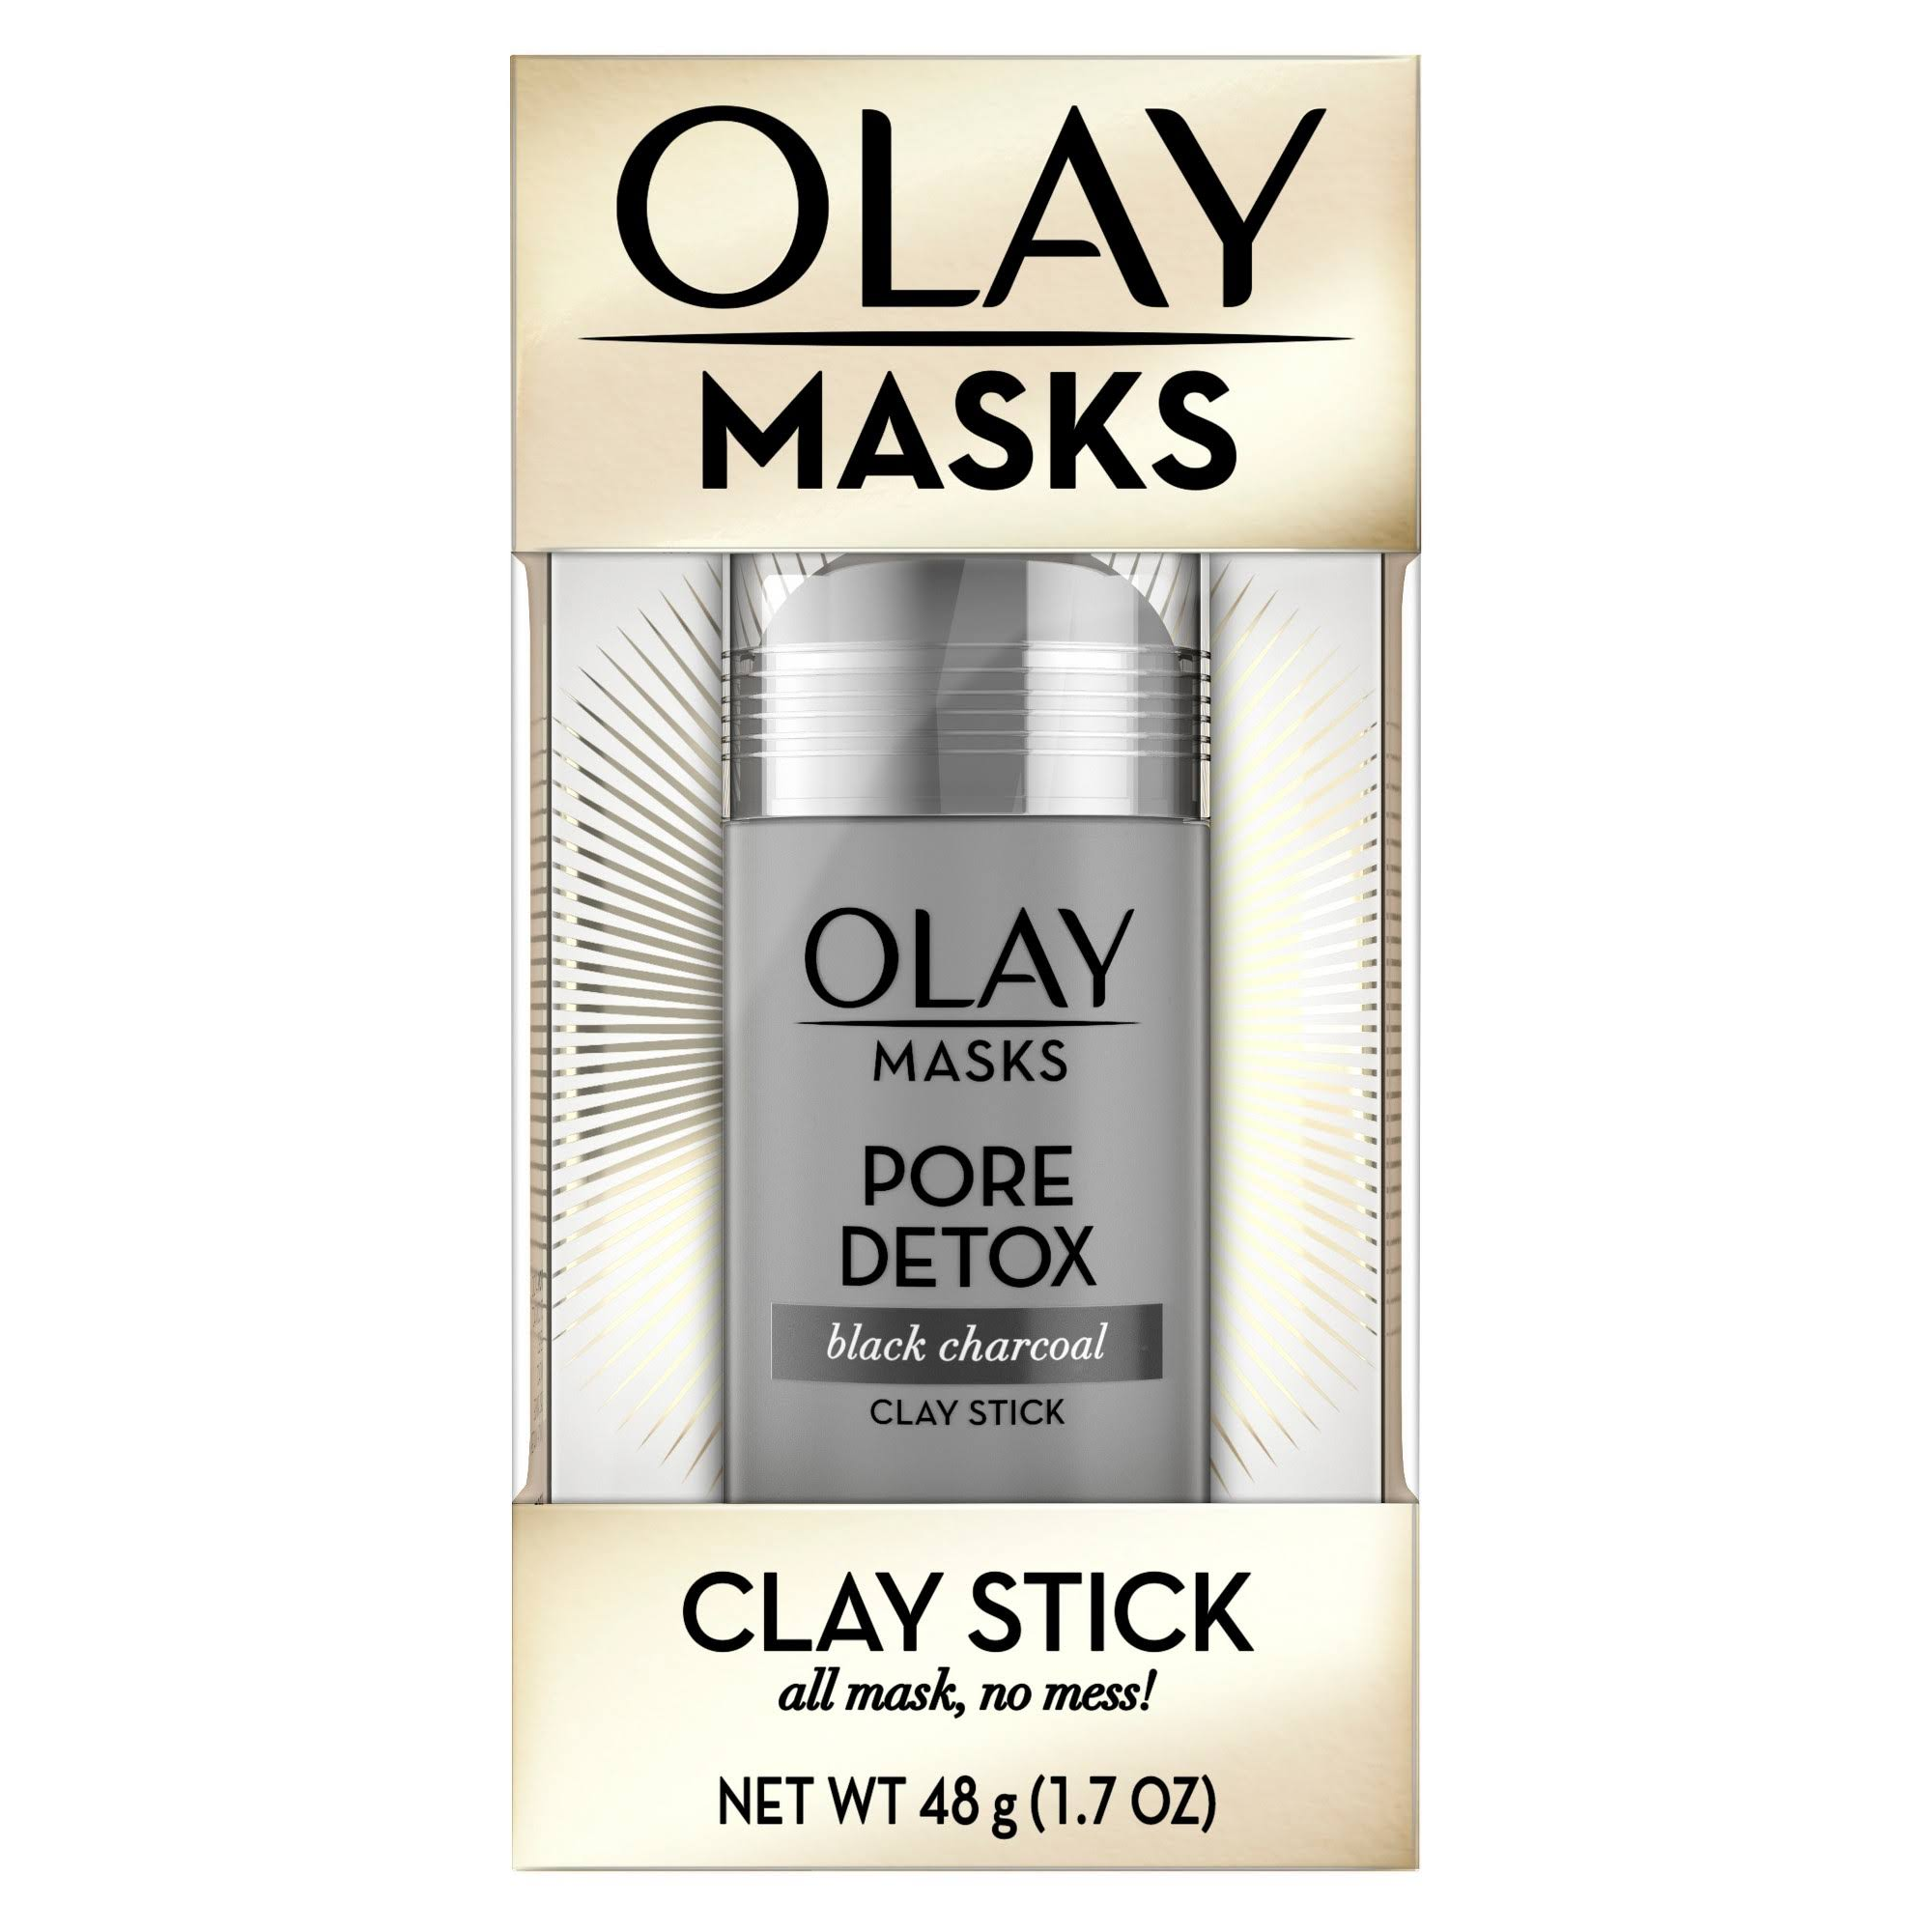 Olay Pore Detox Clay Face Mask Stick Facial Cleanser - Black Charcoal, 1.7oz